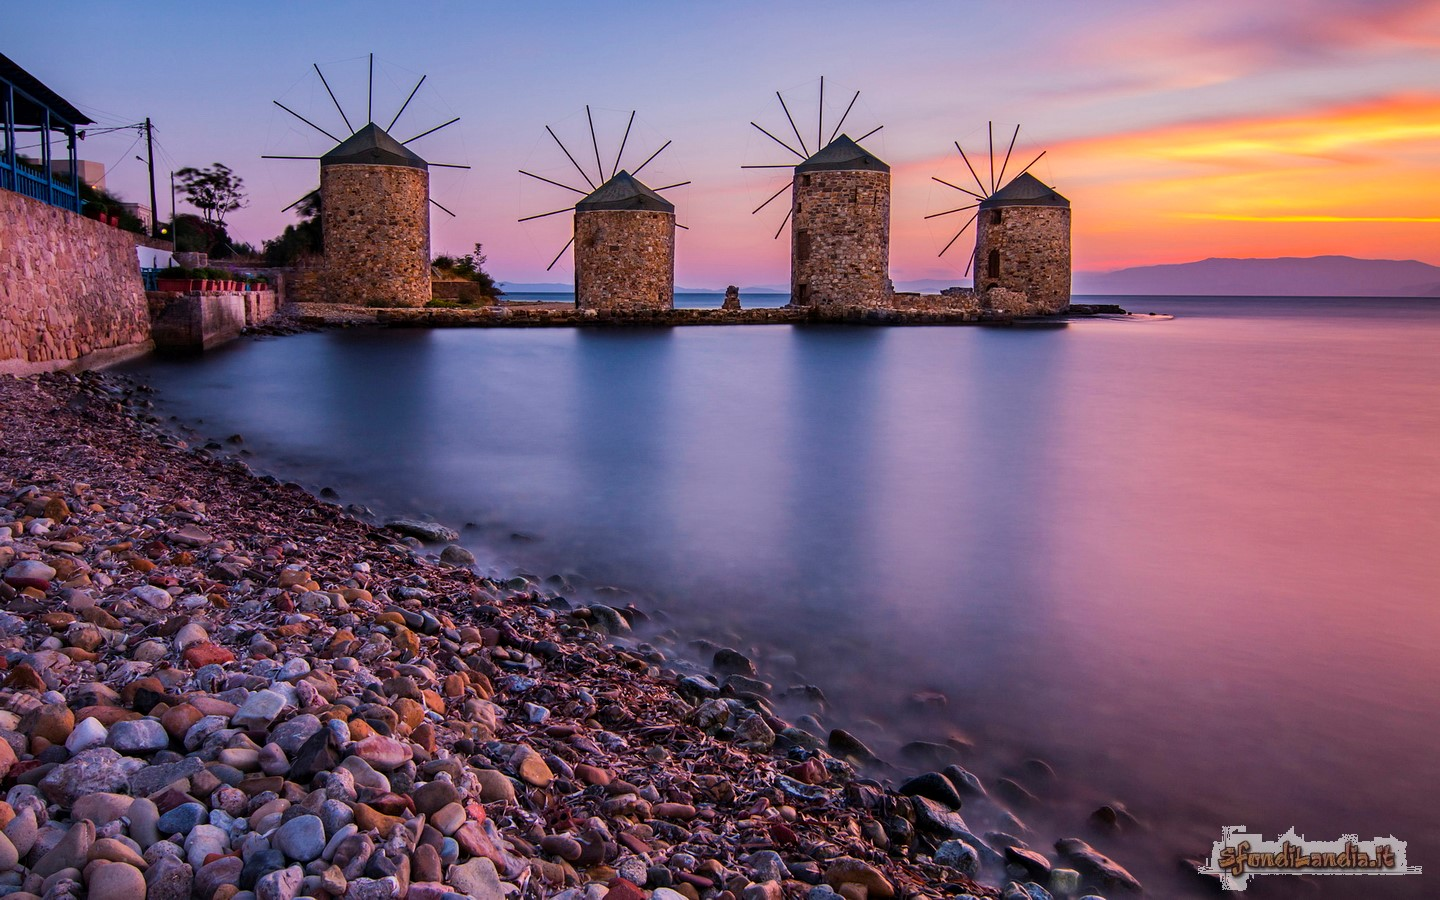 Windmills In Chios